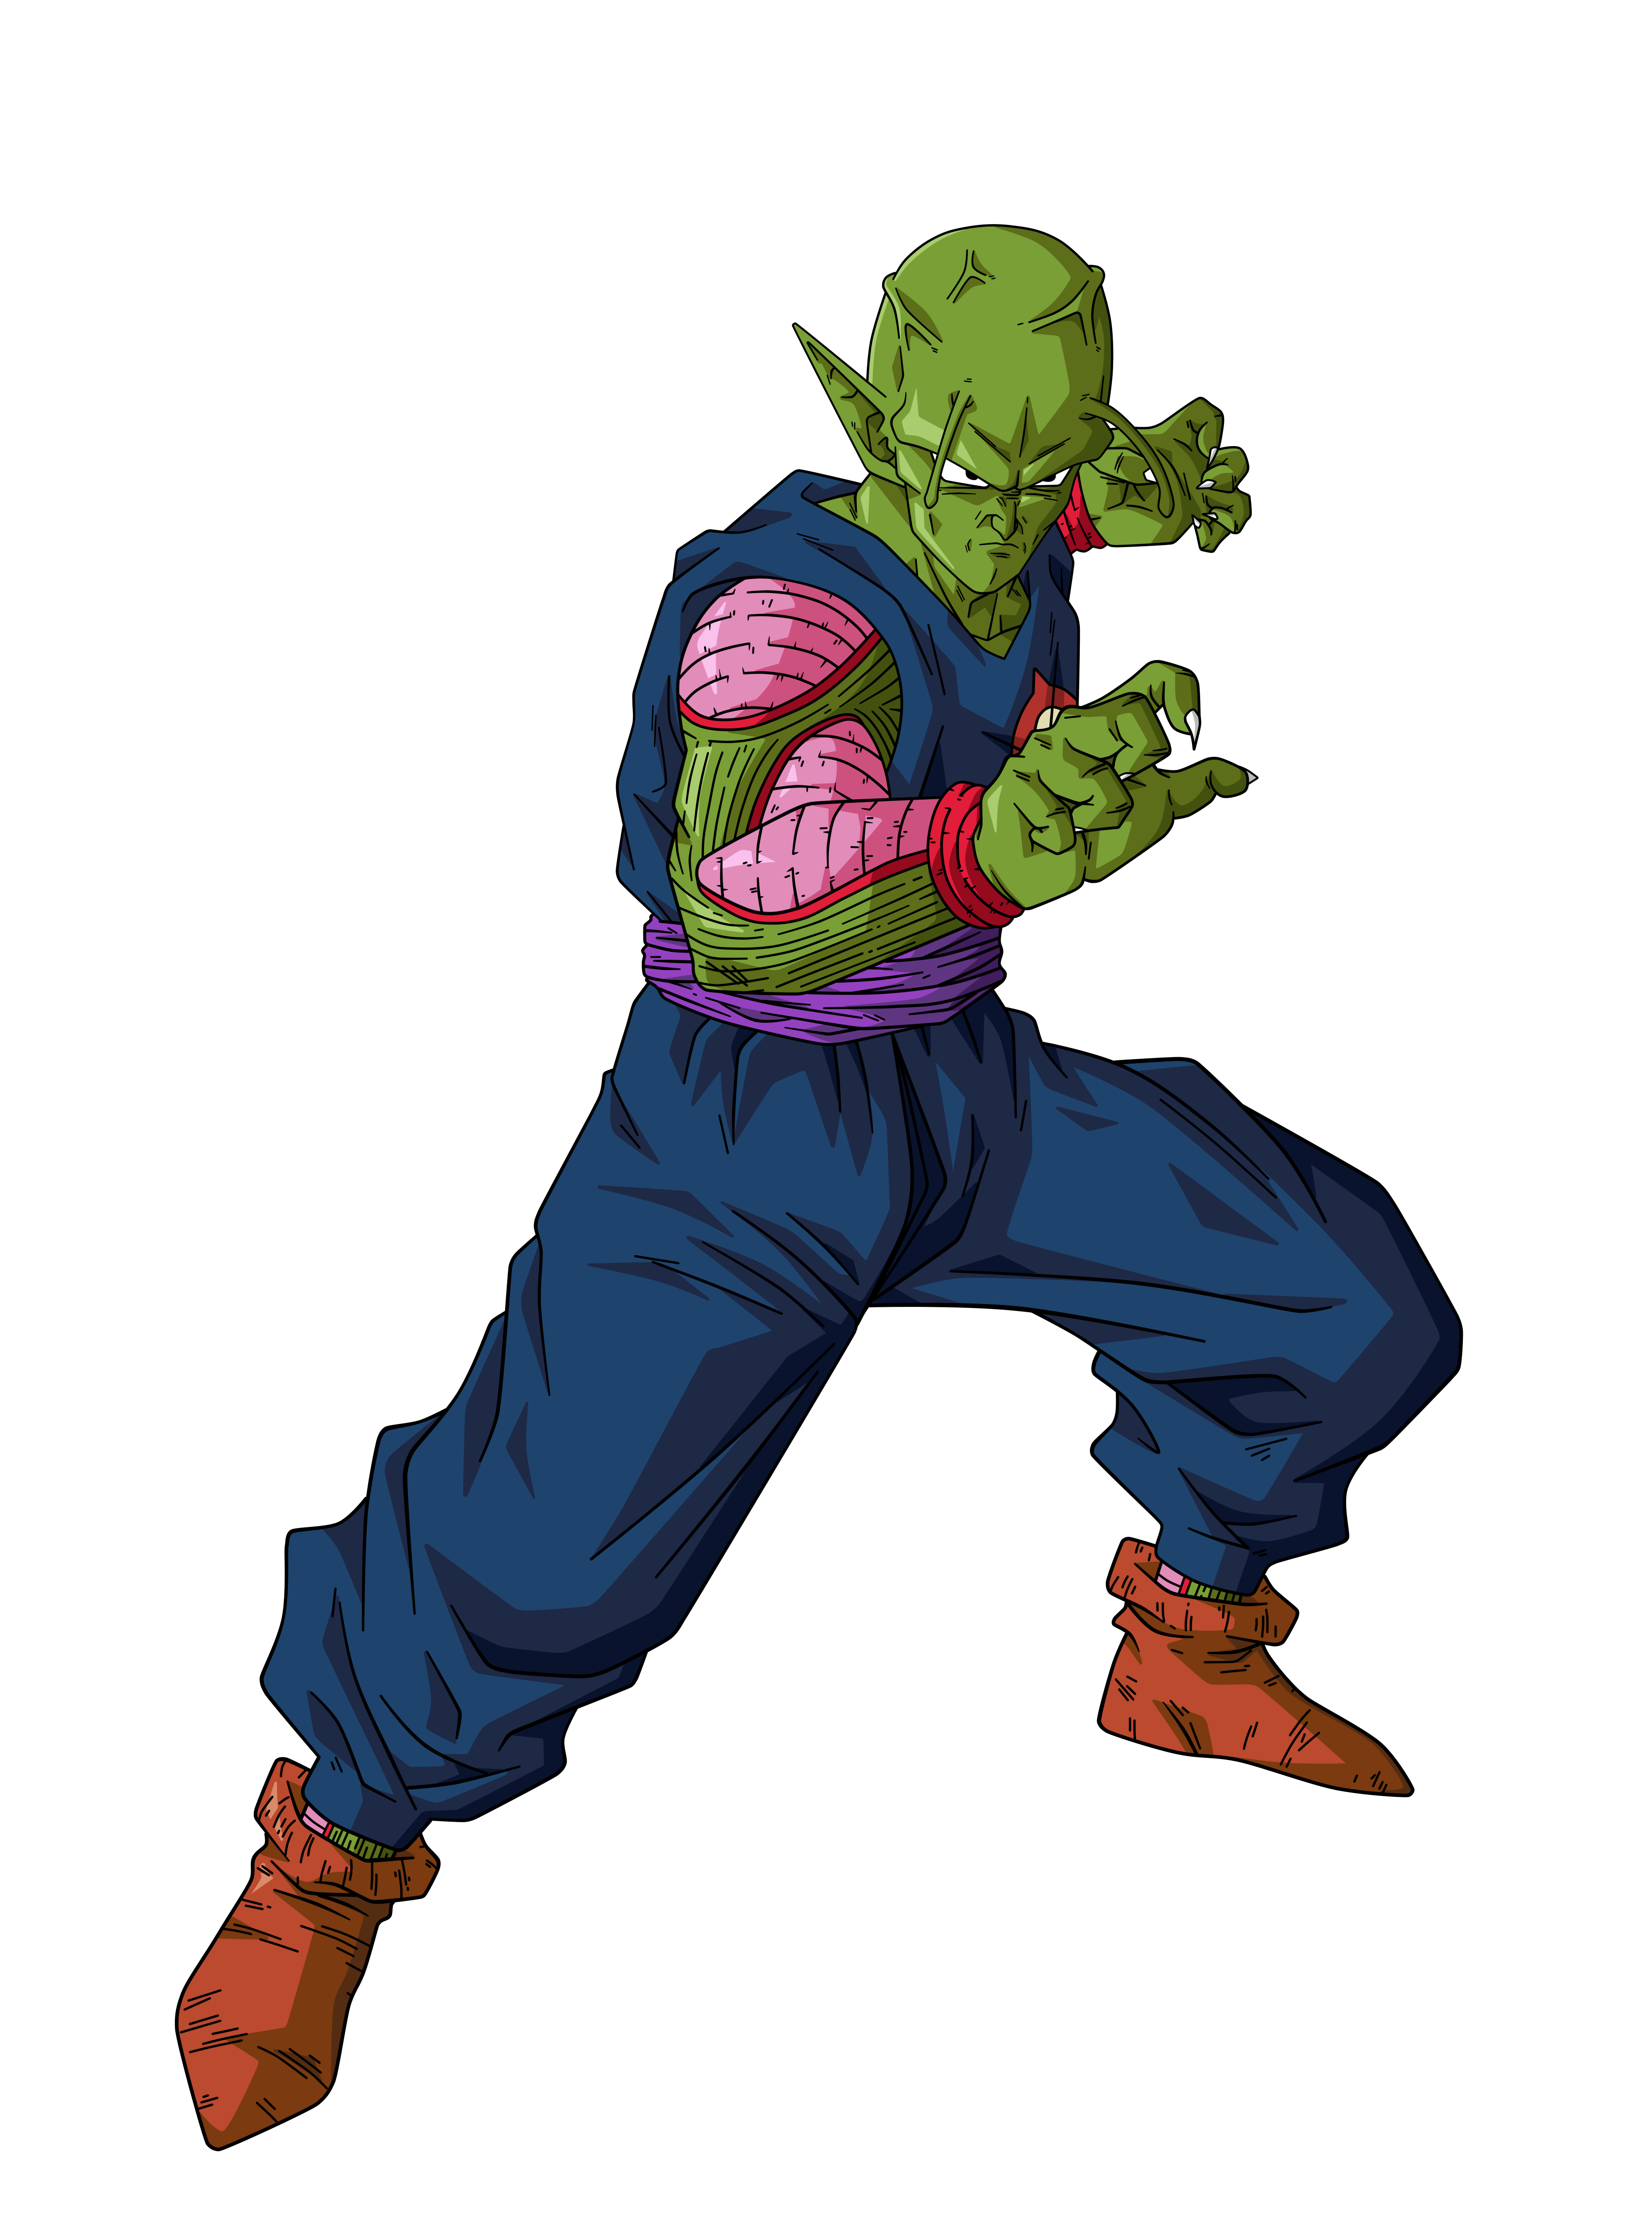 Piccolo face png. Daimaoh by bardocksonic on